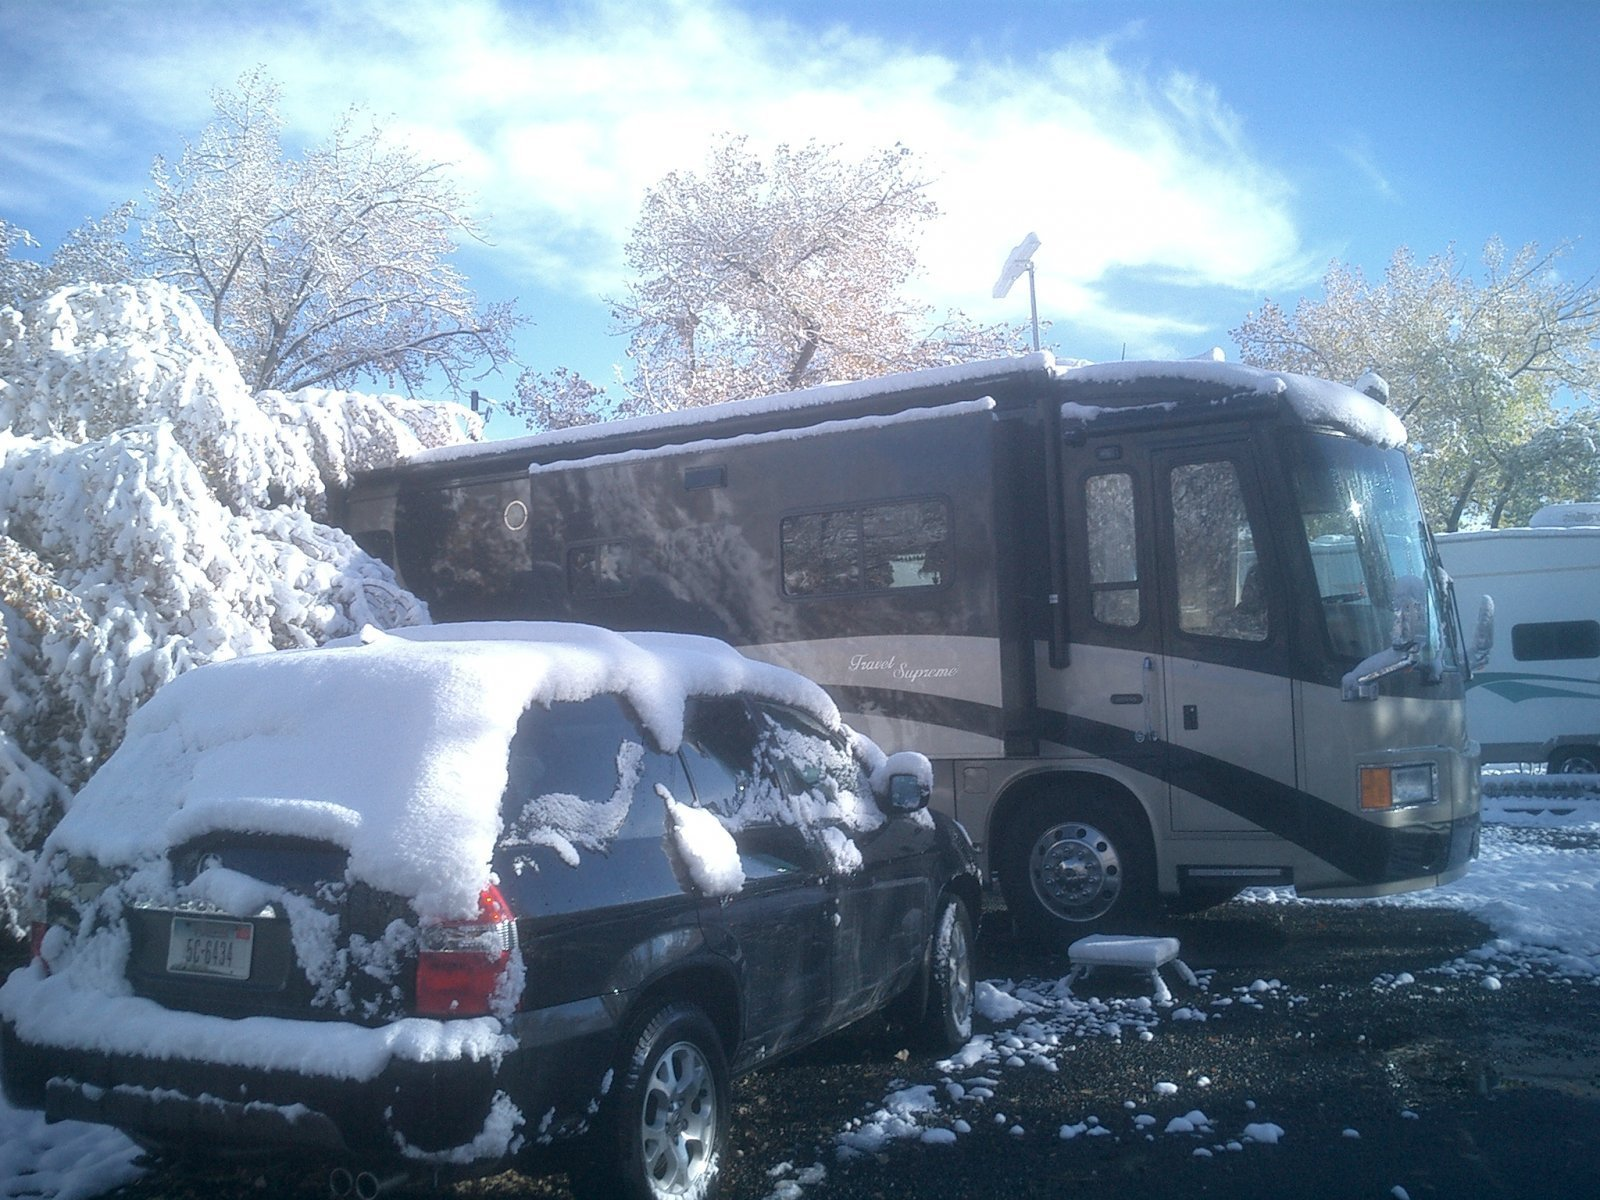 Winter RVing Tips From Experienced Snowbirds